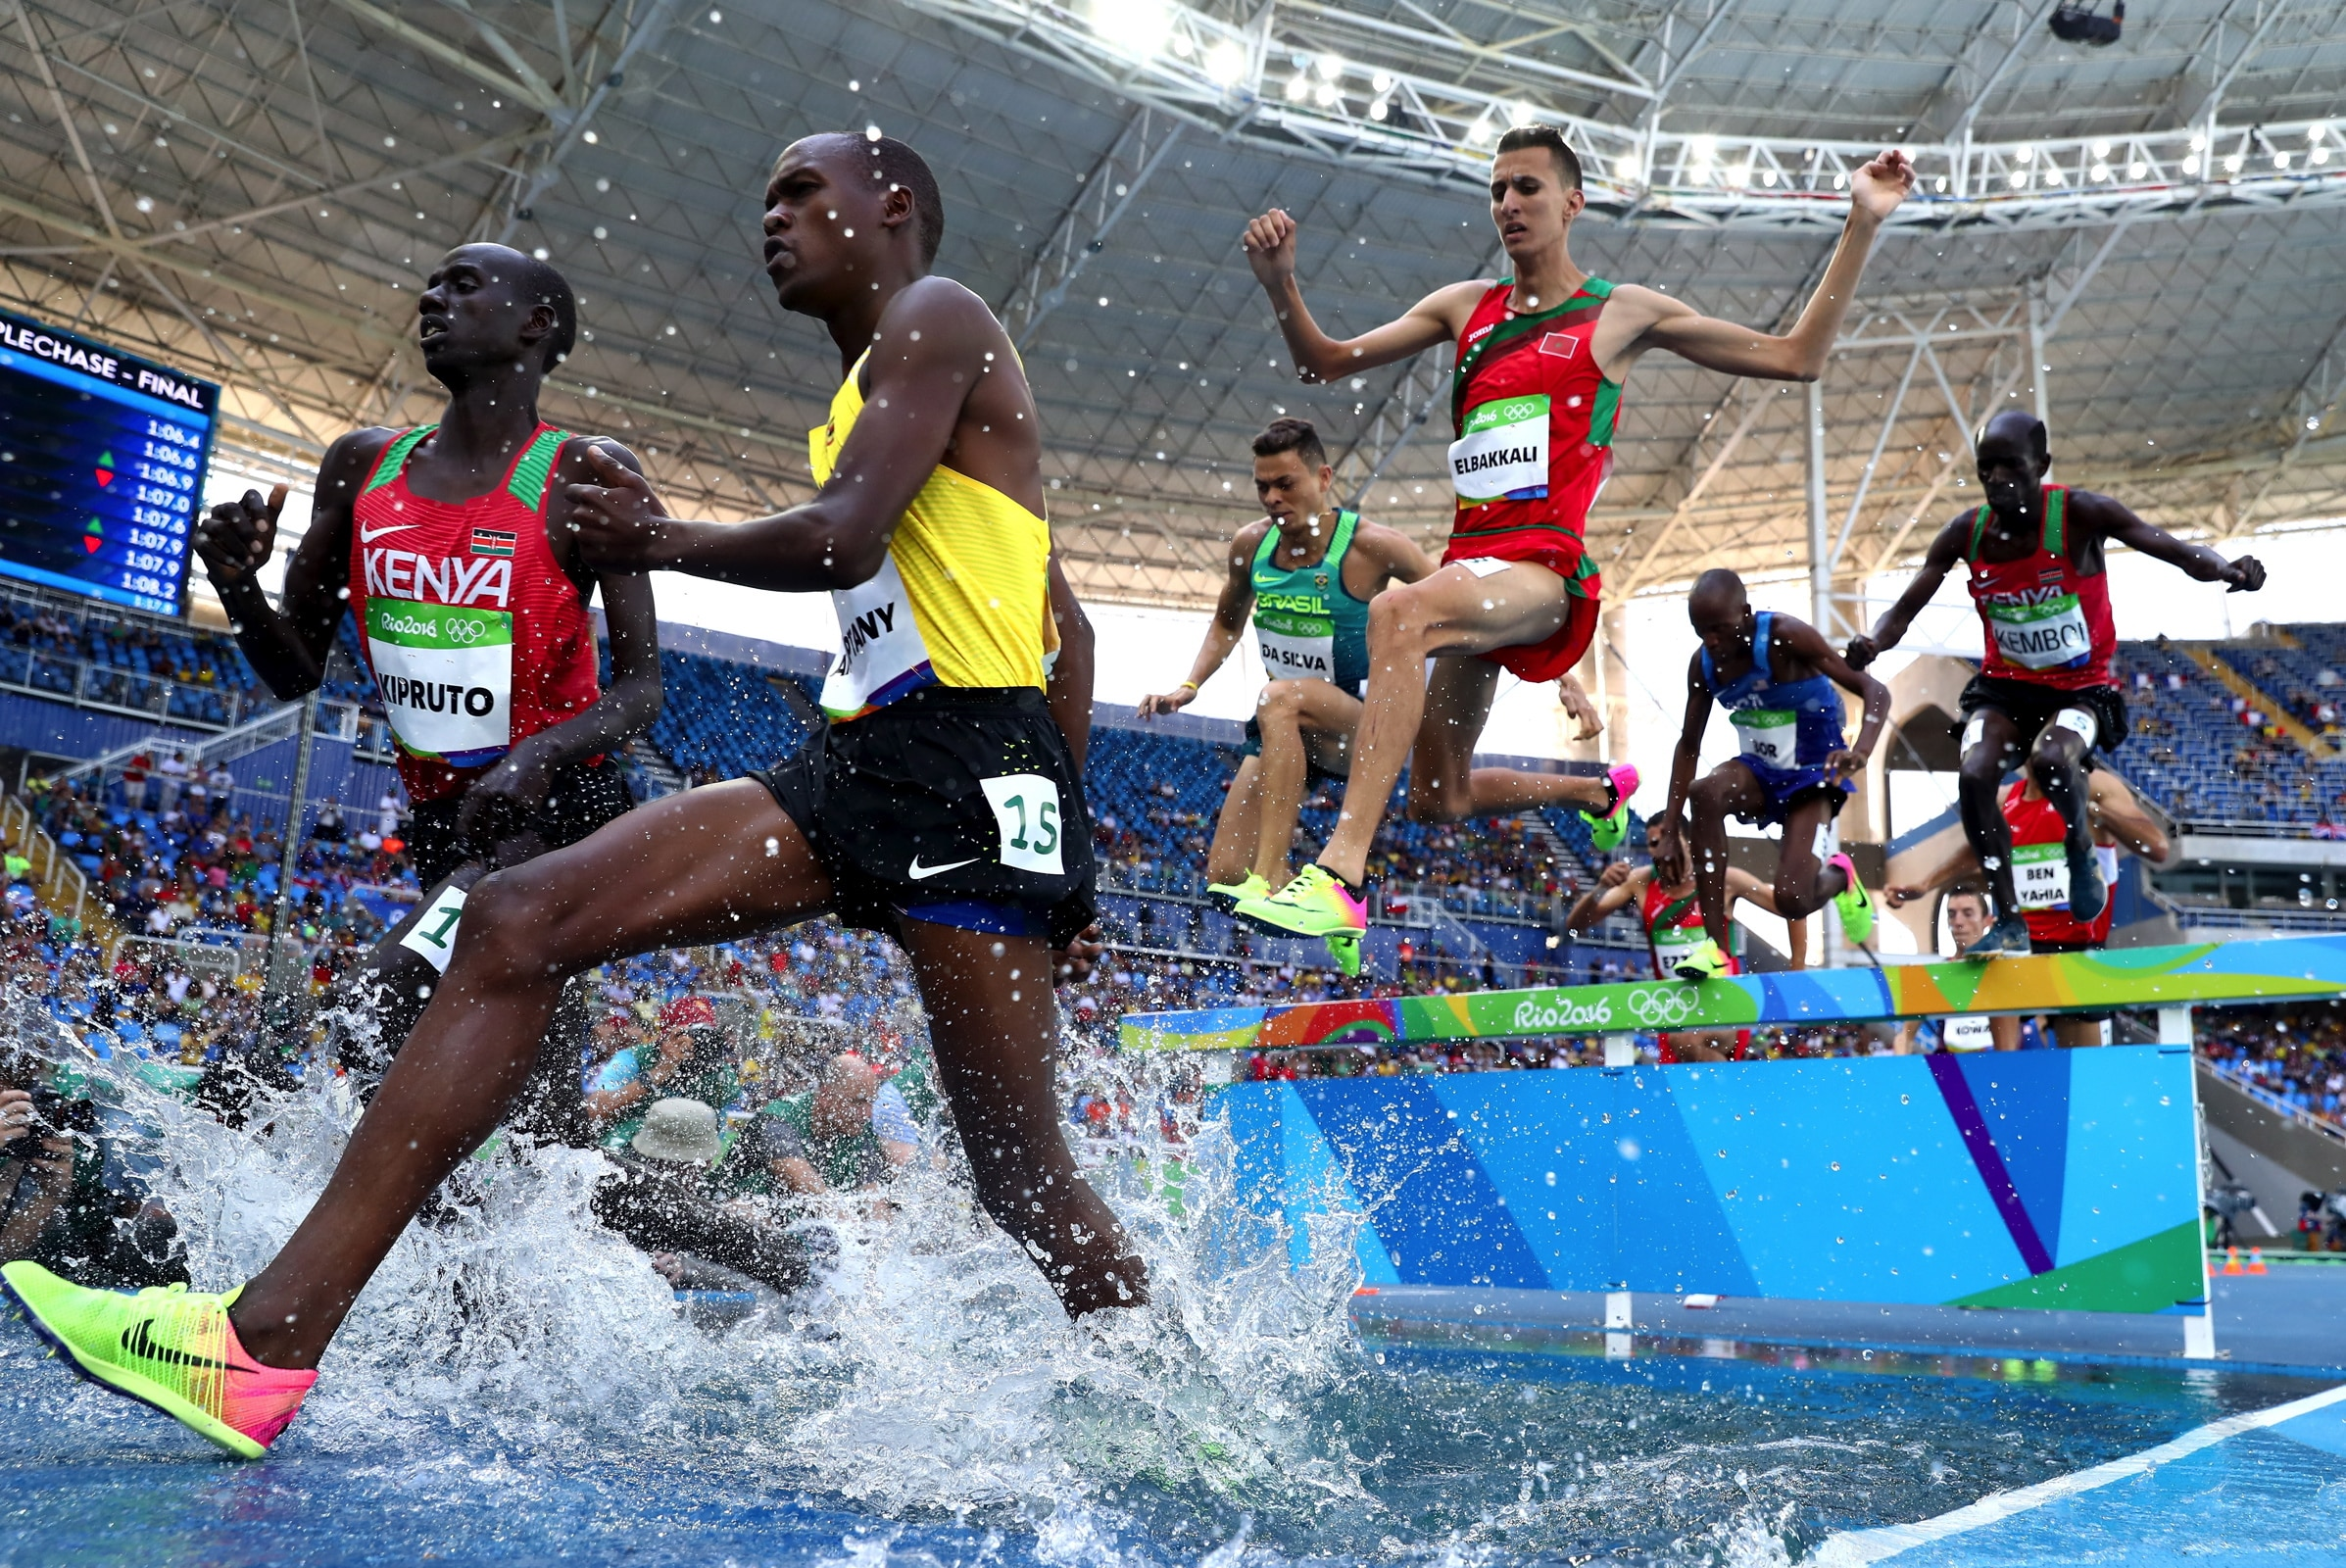 Athletics - Men's 3000m steeplechase